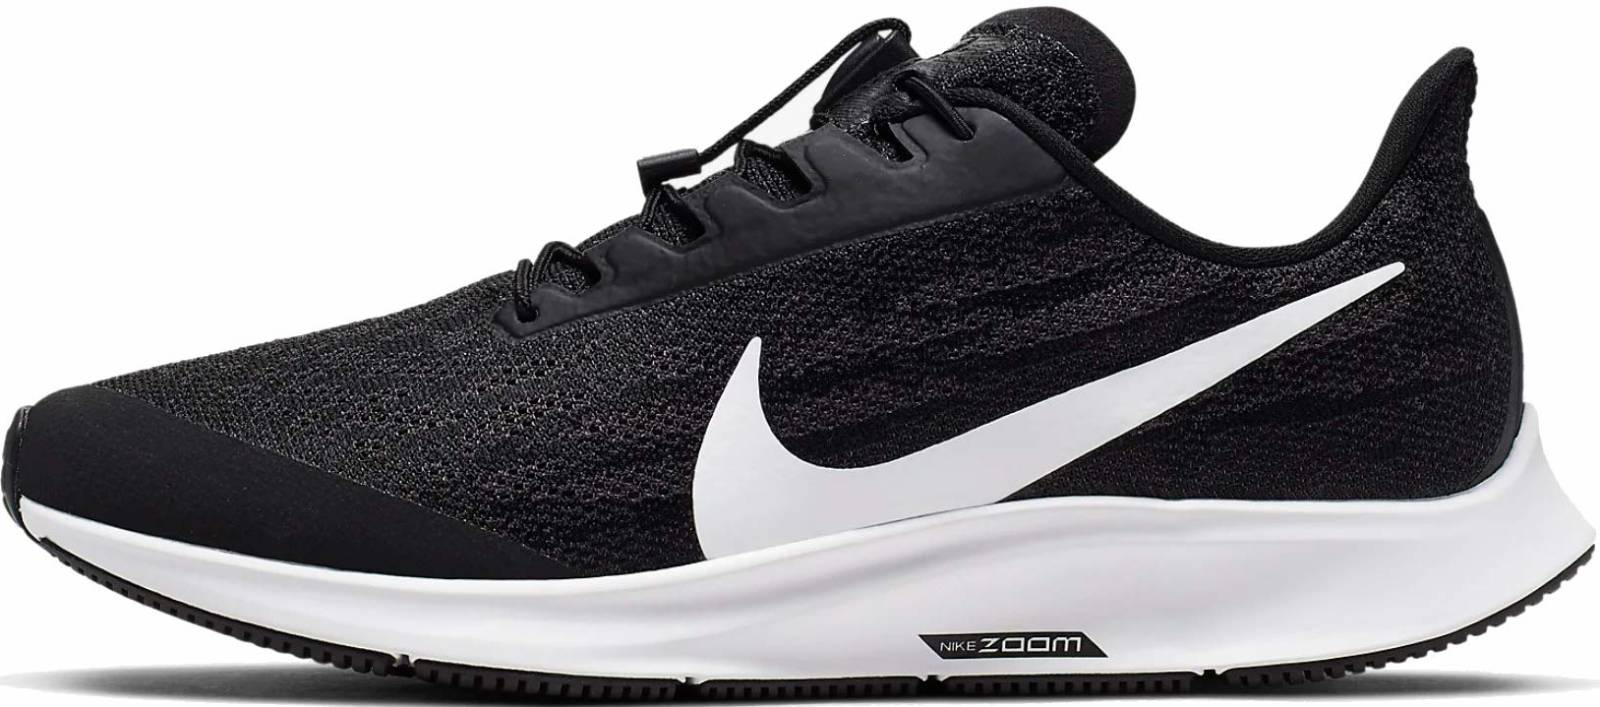 Absoluto mundo James Dyson  Nike Air Zoom Pegasus 36 FlyEase - Deals, Facts, Reviews (2021) | RunRepeat